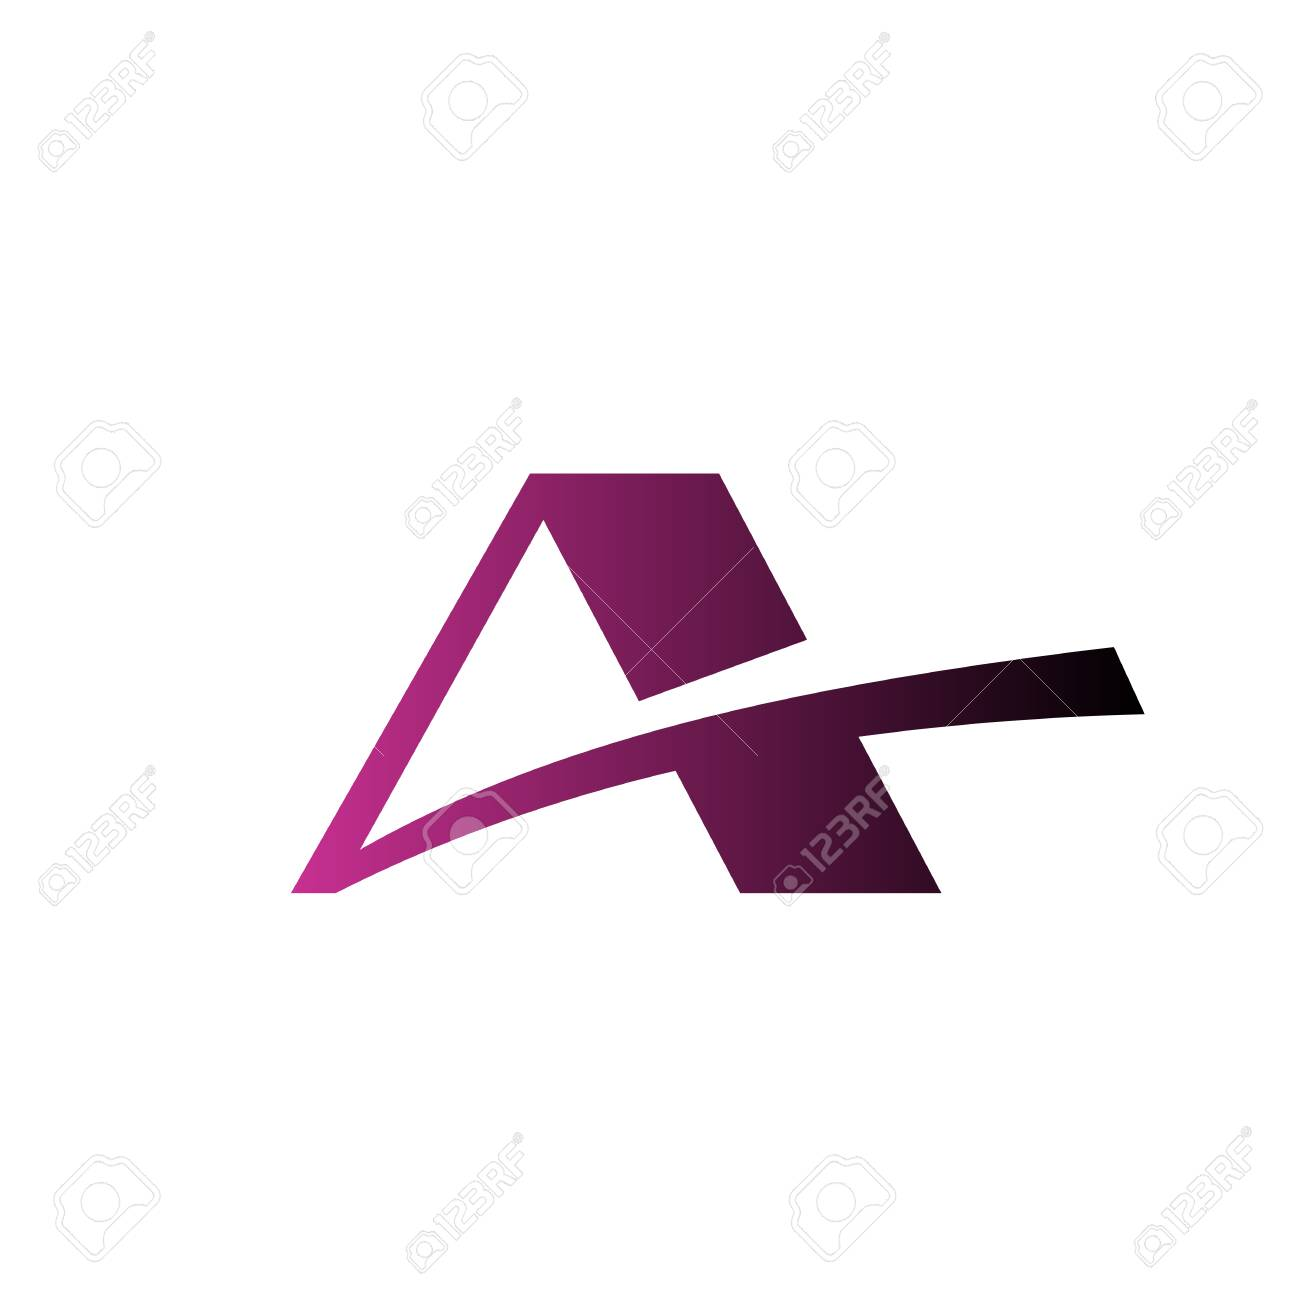 Letter A Logo Real Estate Roof Logo Design Concept Template Royalty Free Cliparts Vectors And Stock Illustration Image 83305536